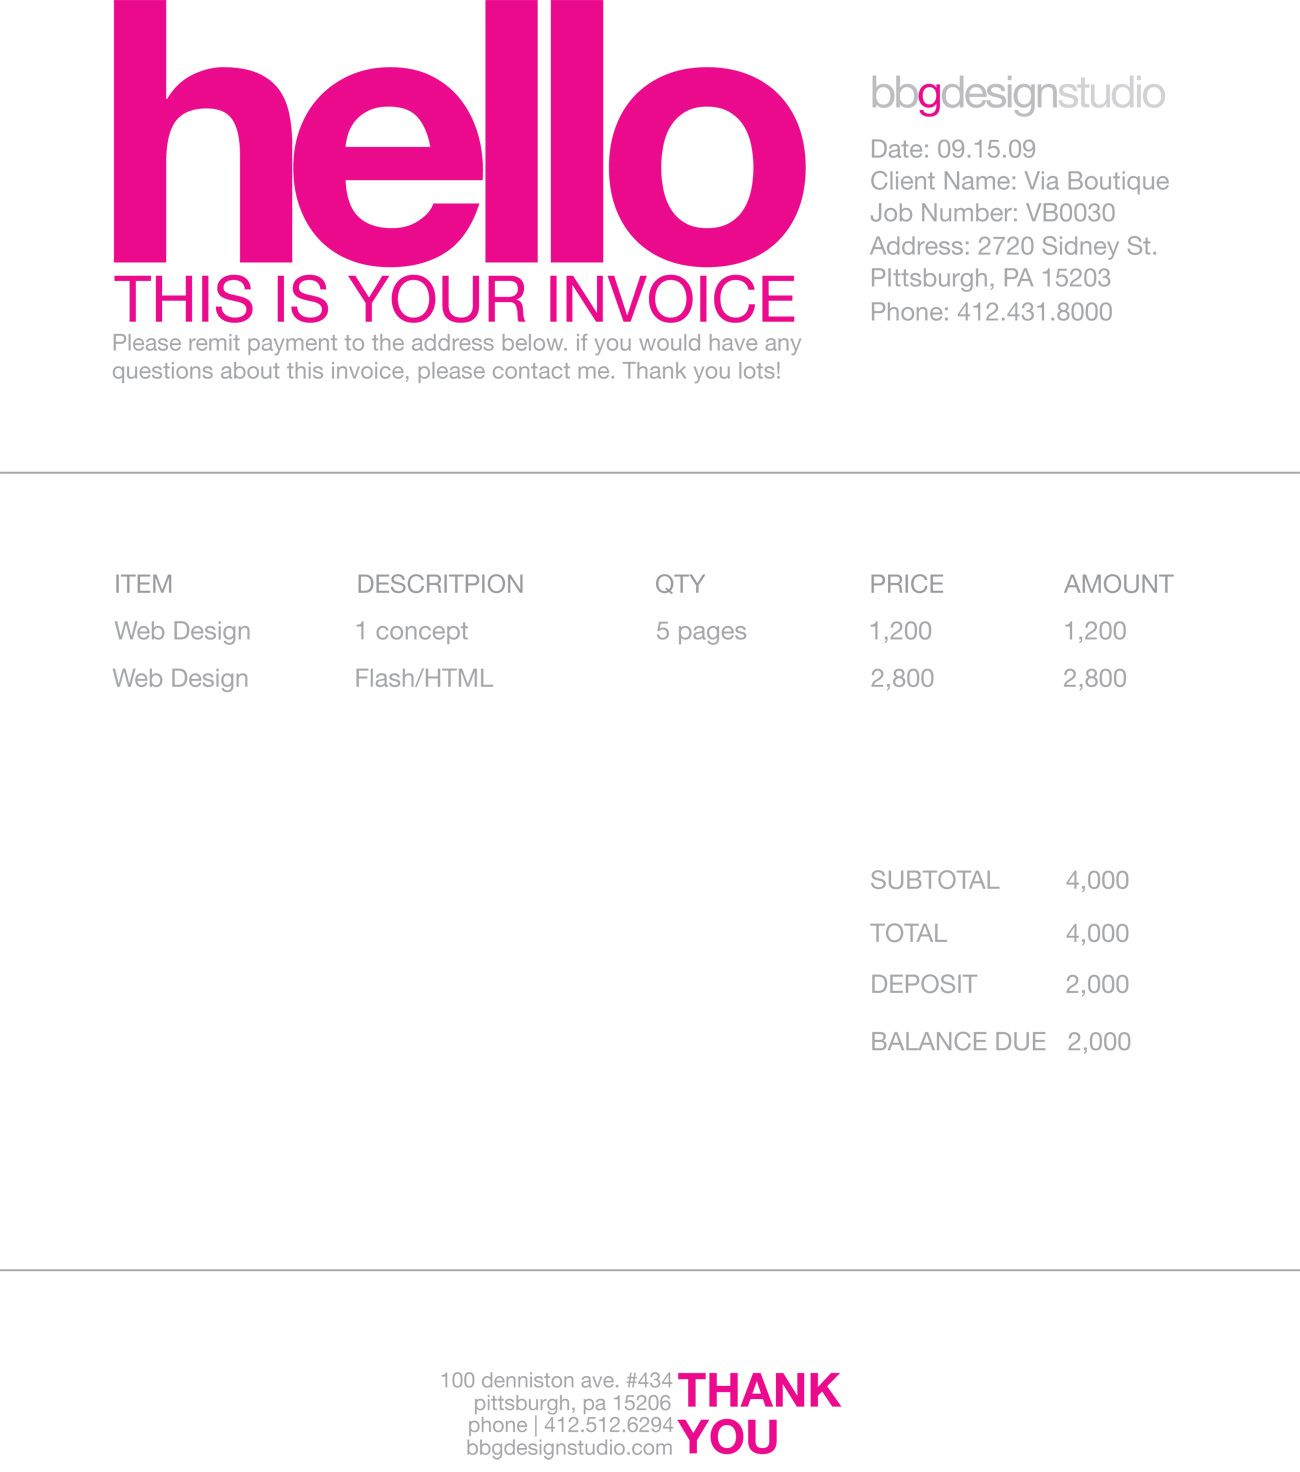 Shopdesignsus  Mesmerizing  Images About Invoice Design On Pinterest With Fascinating Service Invoice Example Besides Invoice How To Furthermore Car Service Invoice With Cool Wholesale Invoice Template Also Car Sales Invoice In Addition How To Create An Invoice On Excel And Best App For Invoices As Well As Numbering Invoices Additionally Invoice On Excel From Pinterestcom With Shopdesignsus  Fascinating  Images About Invoice Design On Pinterest With Cool Service Invoice Example Besides Invoice How To Furthermore Car Service Invoice And Mesmerizing Wholesale Invoice Template Also Car Sales Invoice In Addition How To Create An Invoice On Excel From Pinterestcom